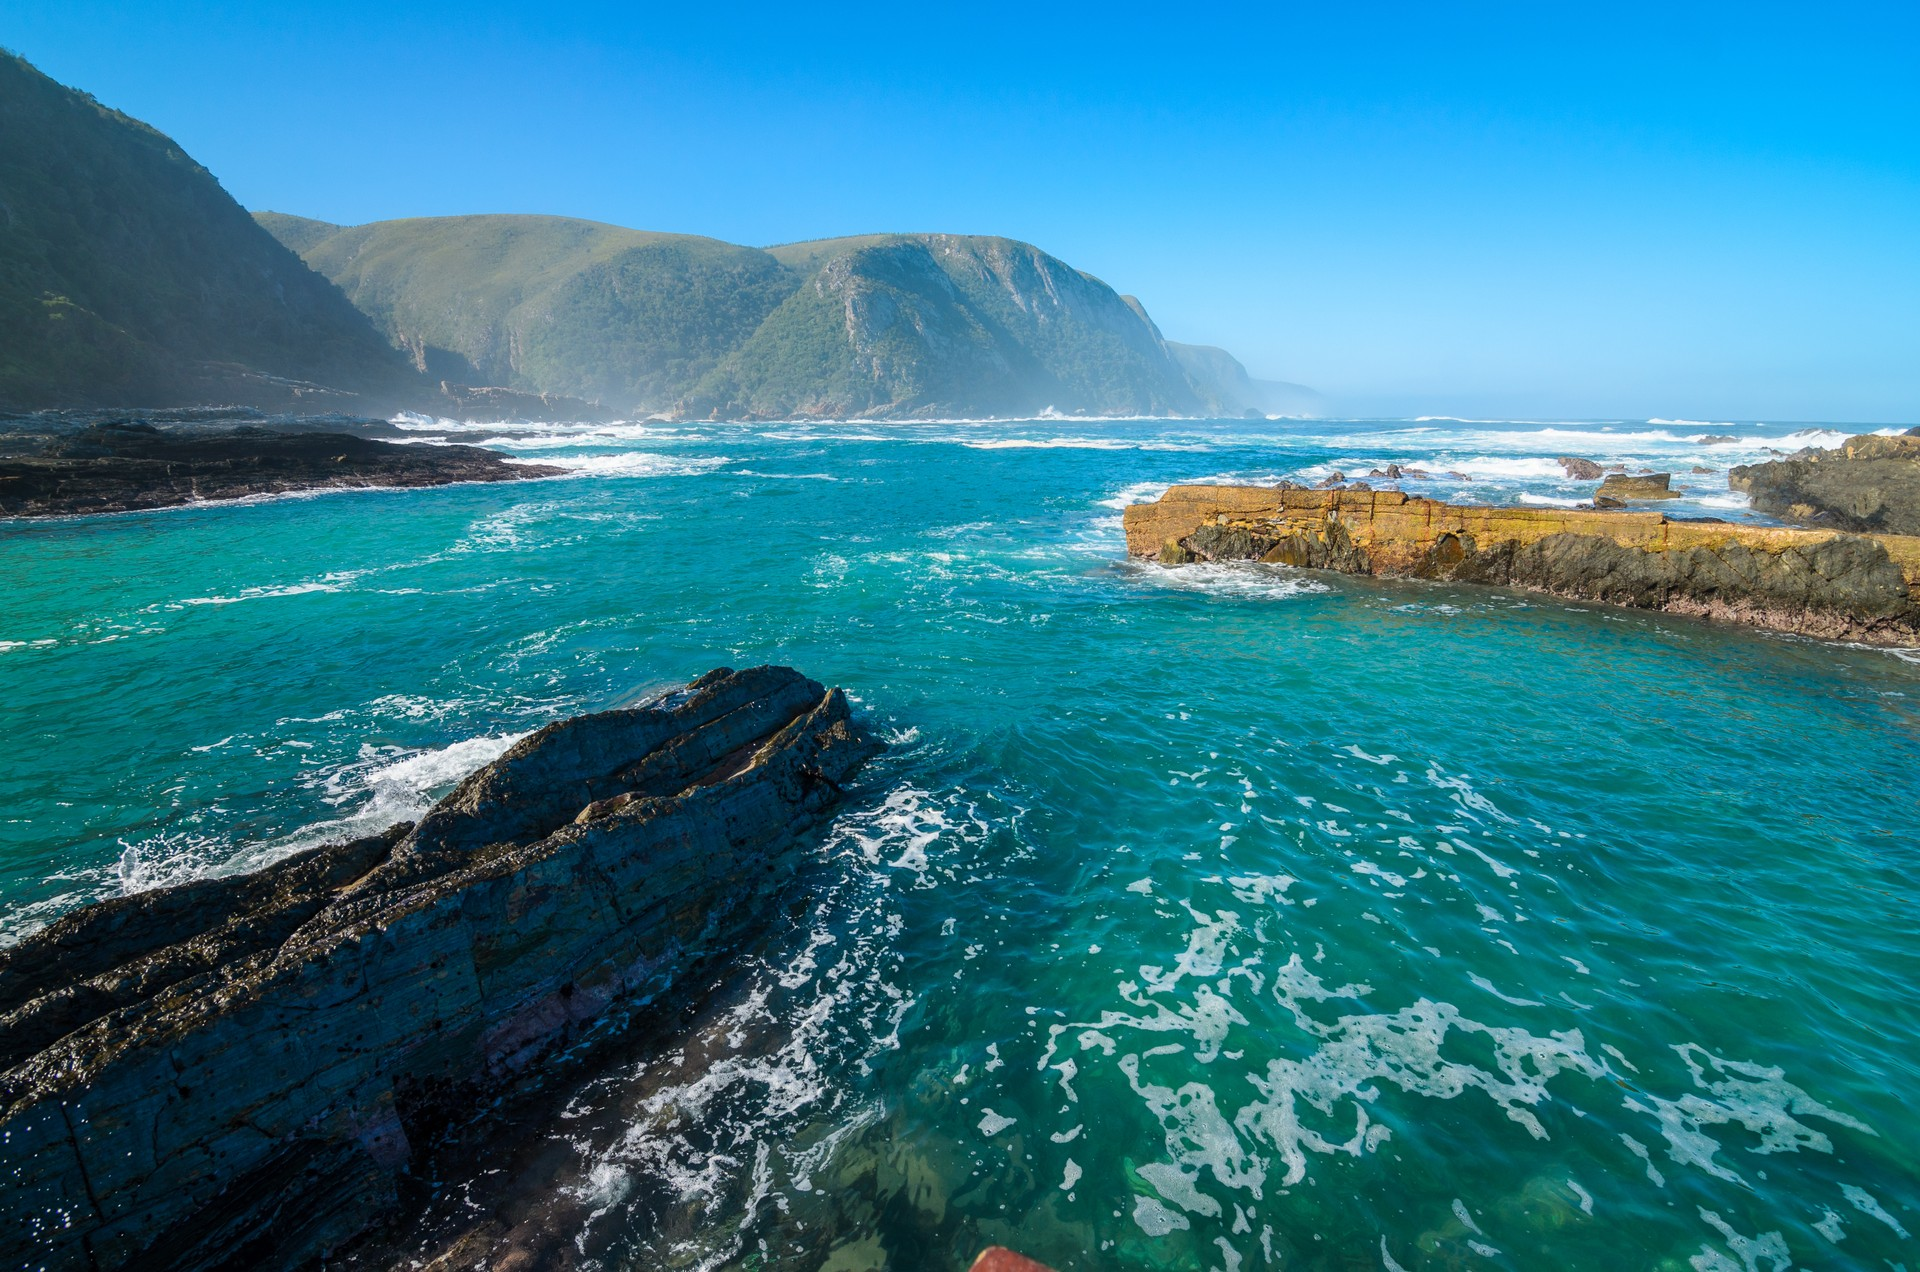 The rugged coastline of South Africa's Garden Route